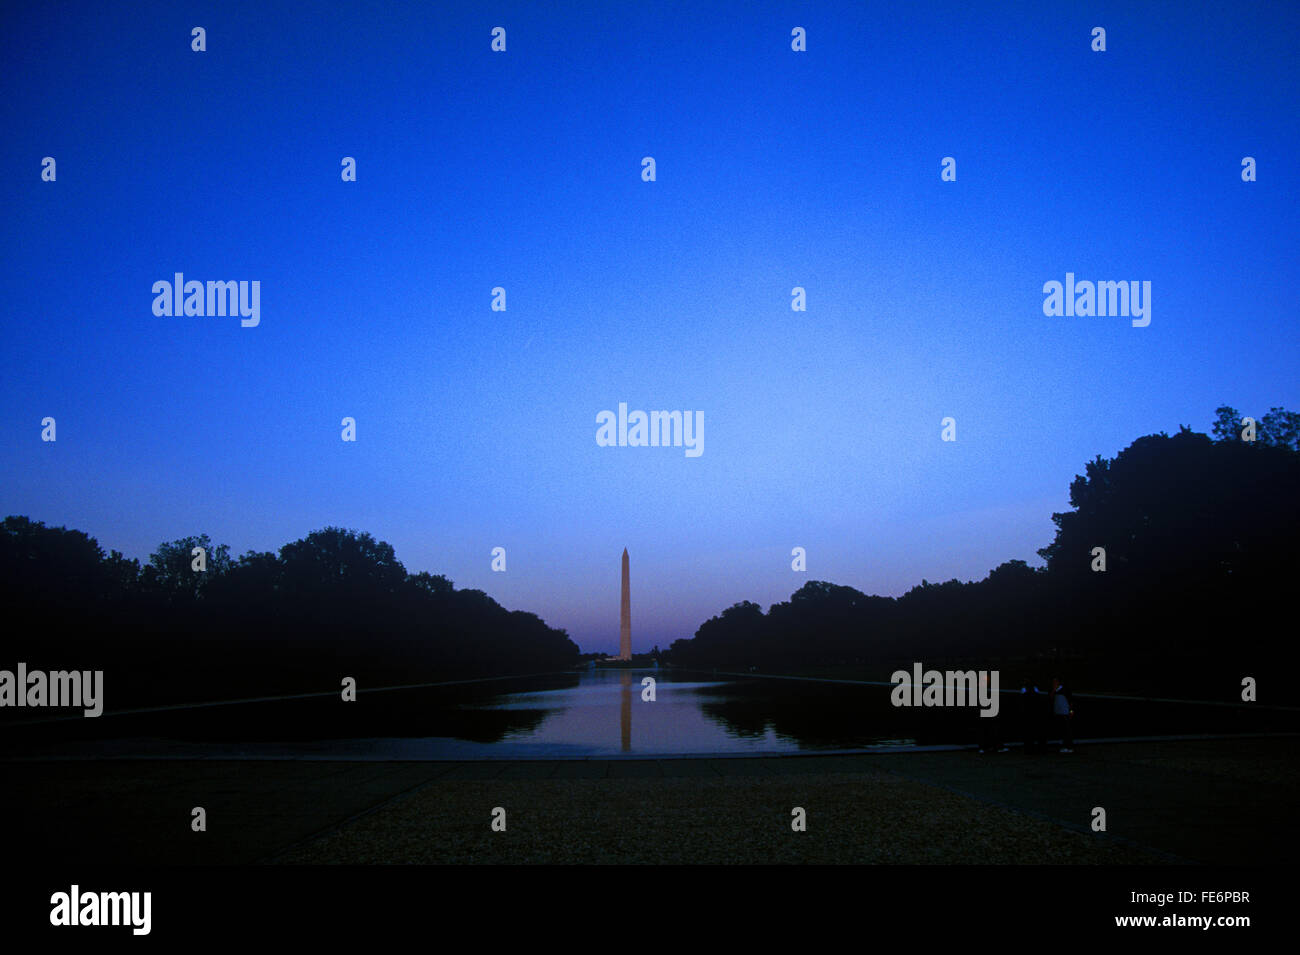 Distant View Of Washington Monument Against Clear Sky At Dusk - Stock Image